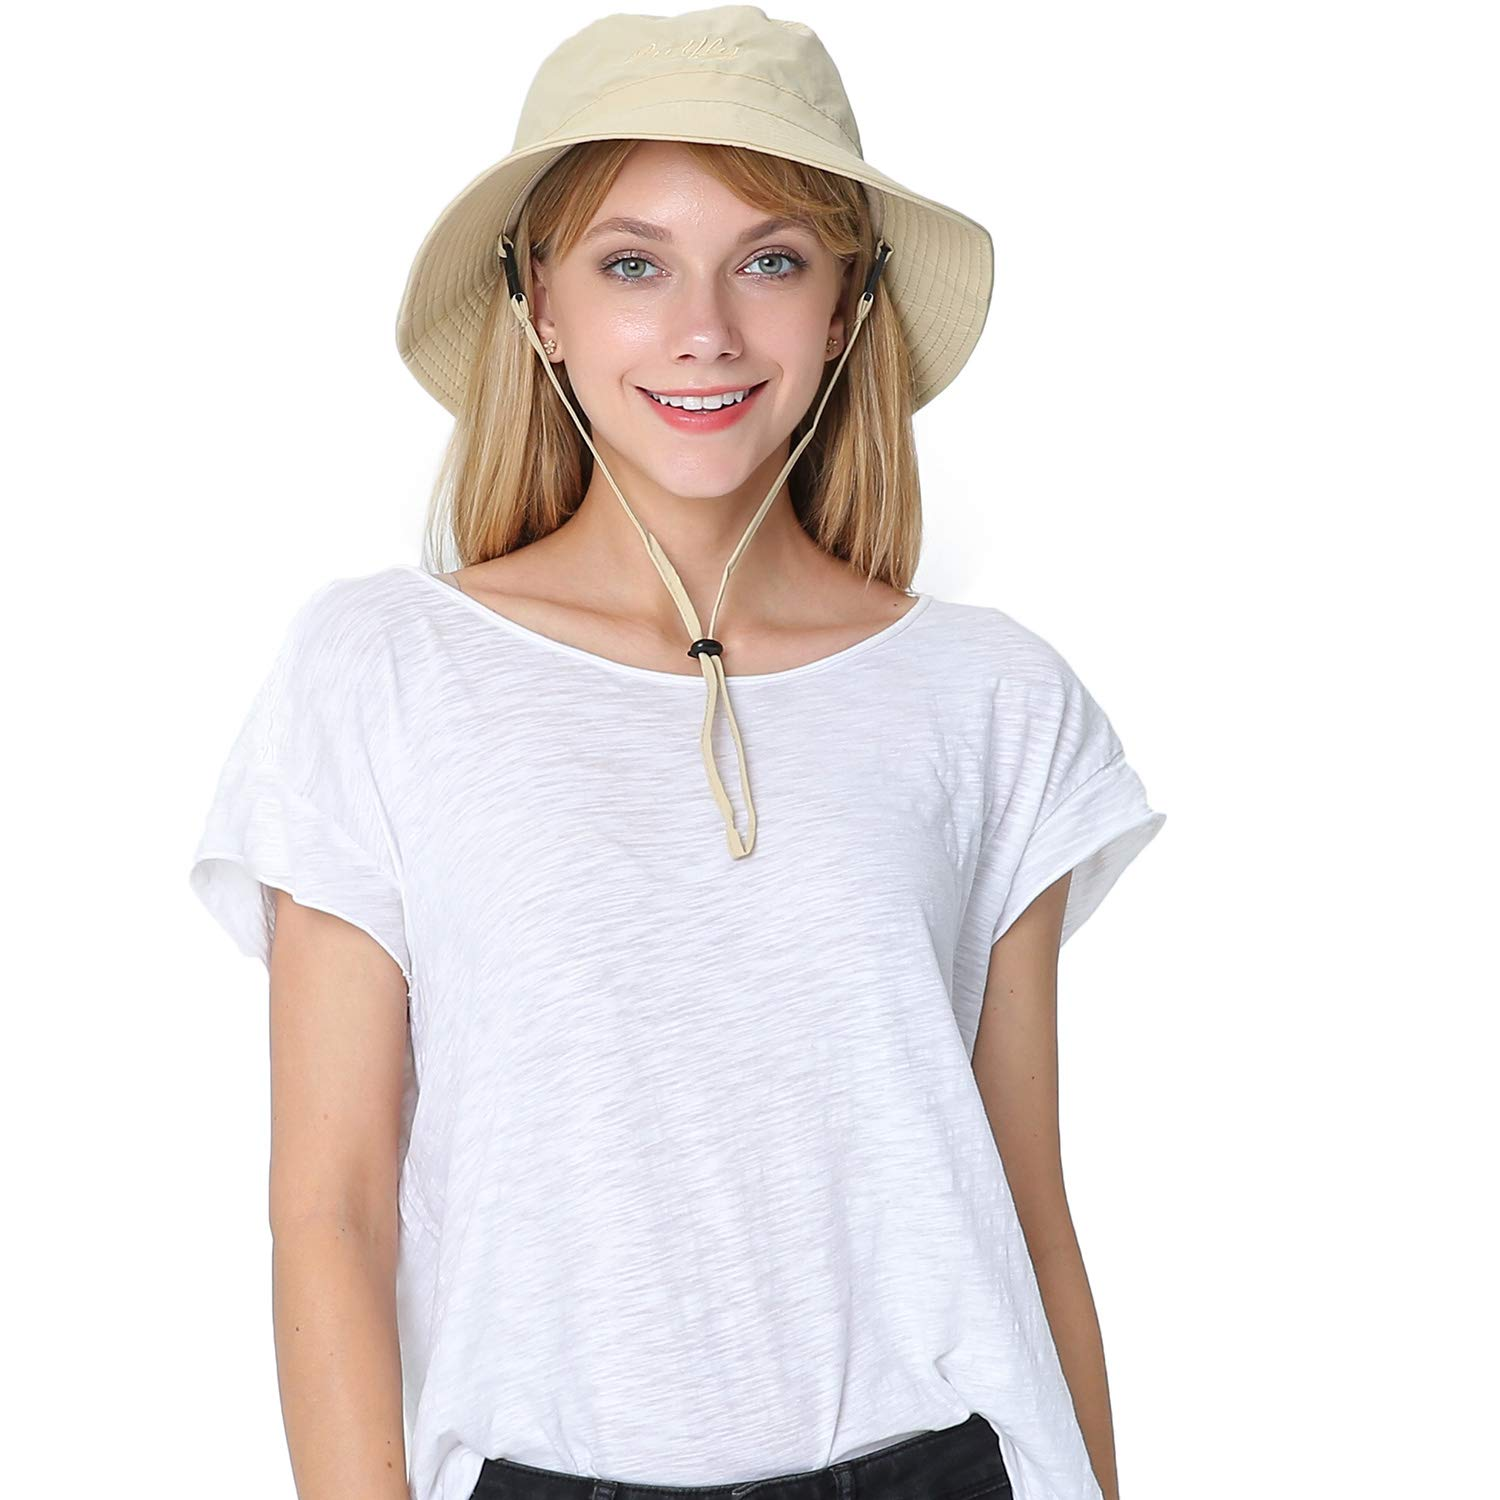 Puli Women's Packable Fisherman Bucket Hat Outdoor Hat with Chin Strap Sun Protective, Khaki